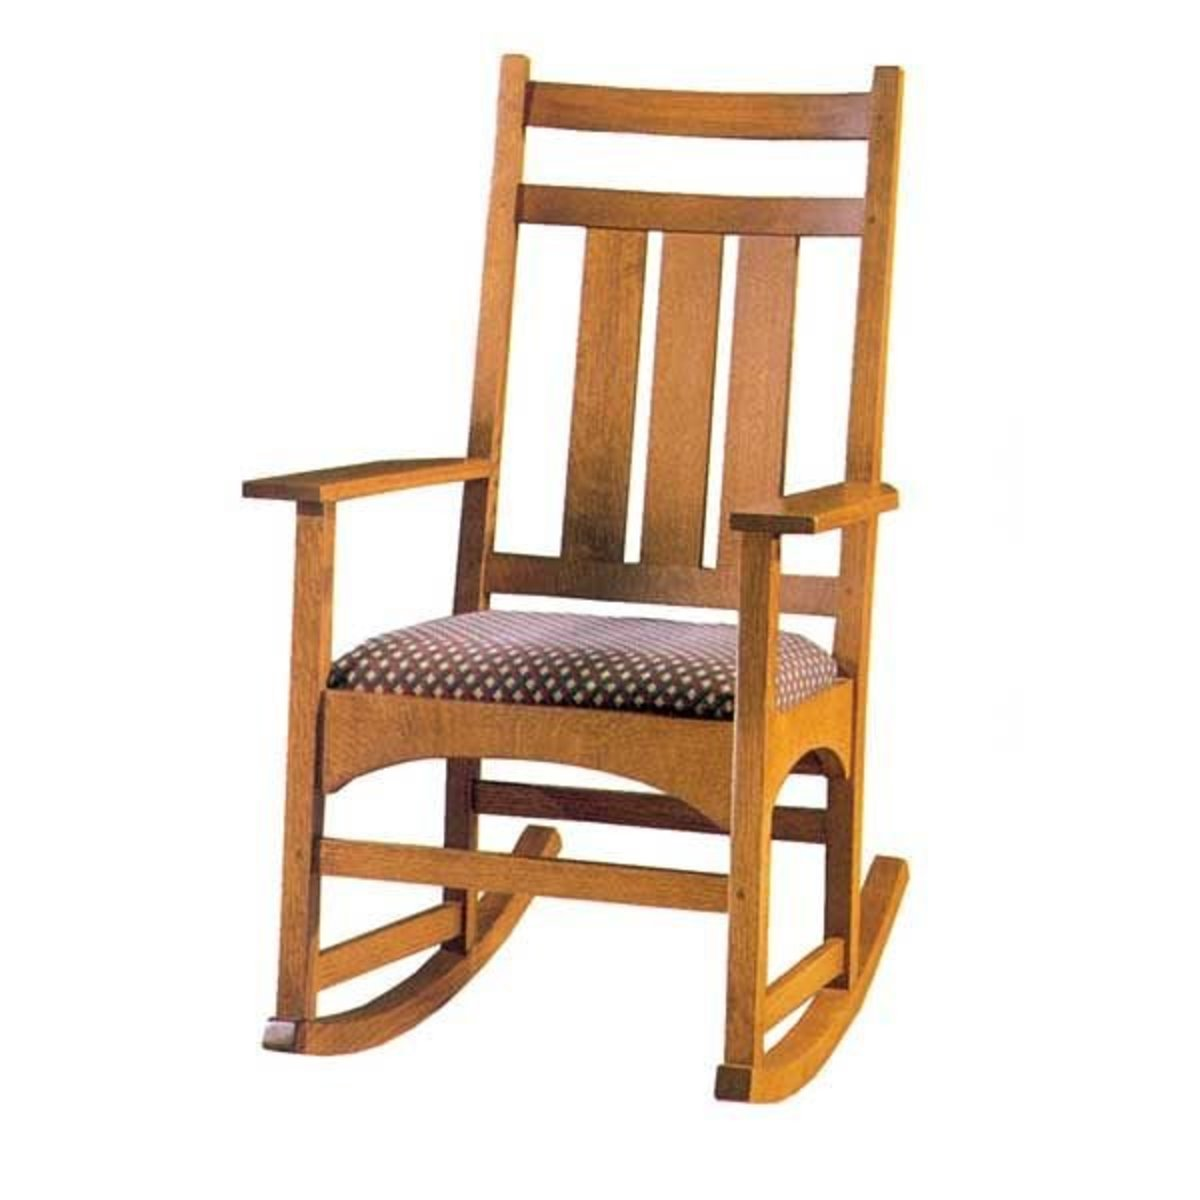 building a rocking chair wrought iron table and chairs vintage woodworking project paper plan to build mission style